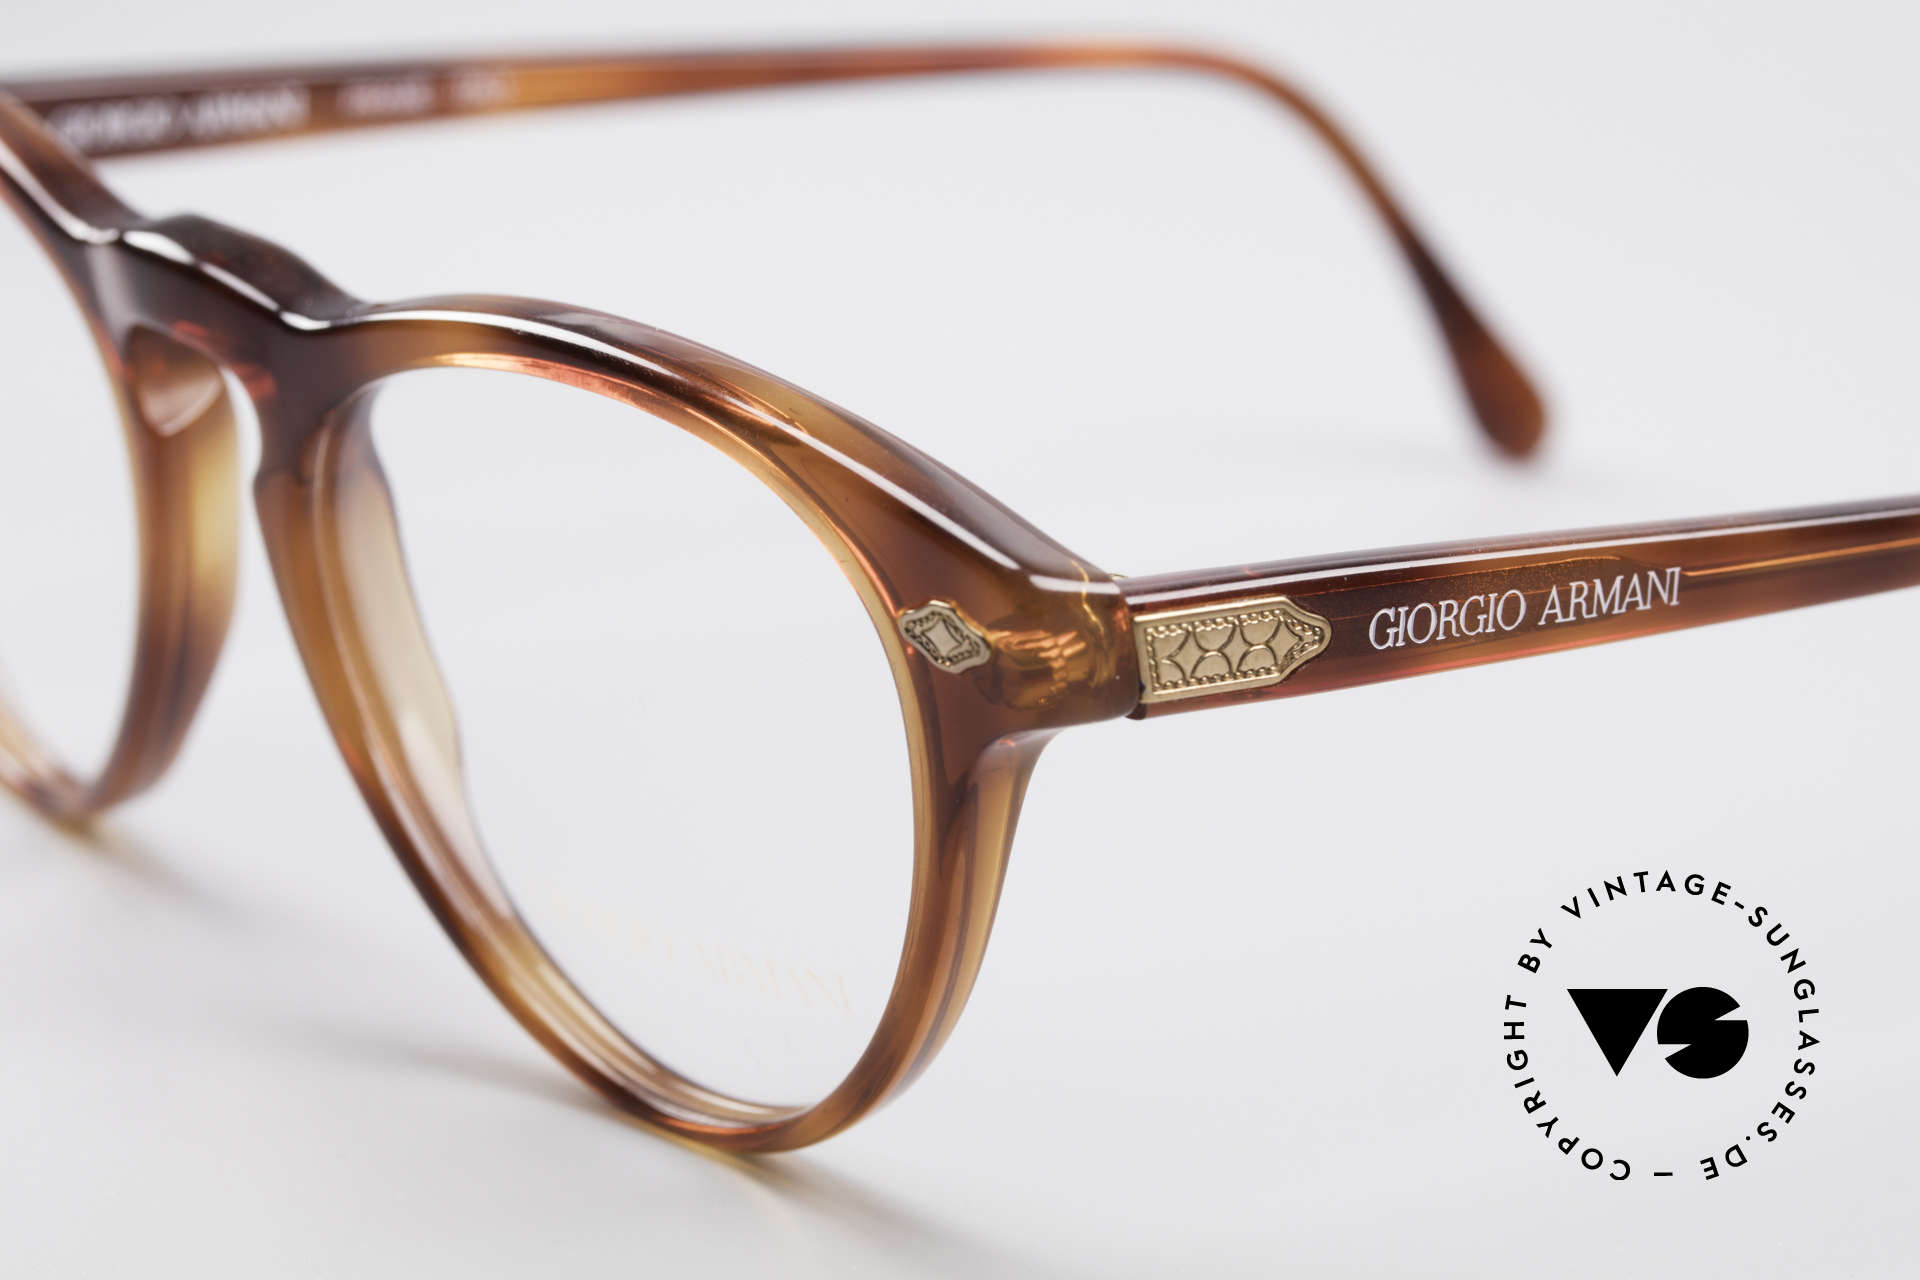 Giorgio Armani 418 Strawberry Shape Eyeglasses, frame is made for lenses of any kind (optical/sun), Made for Men and Women